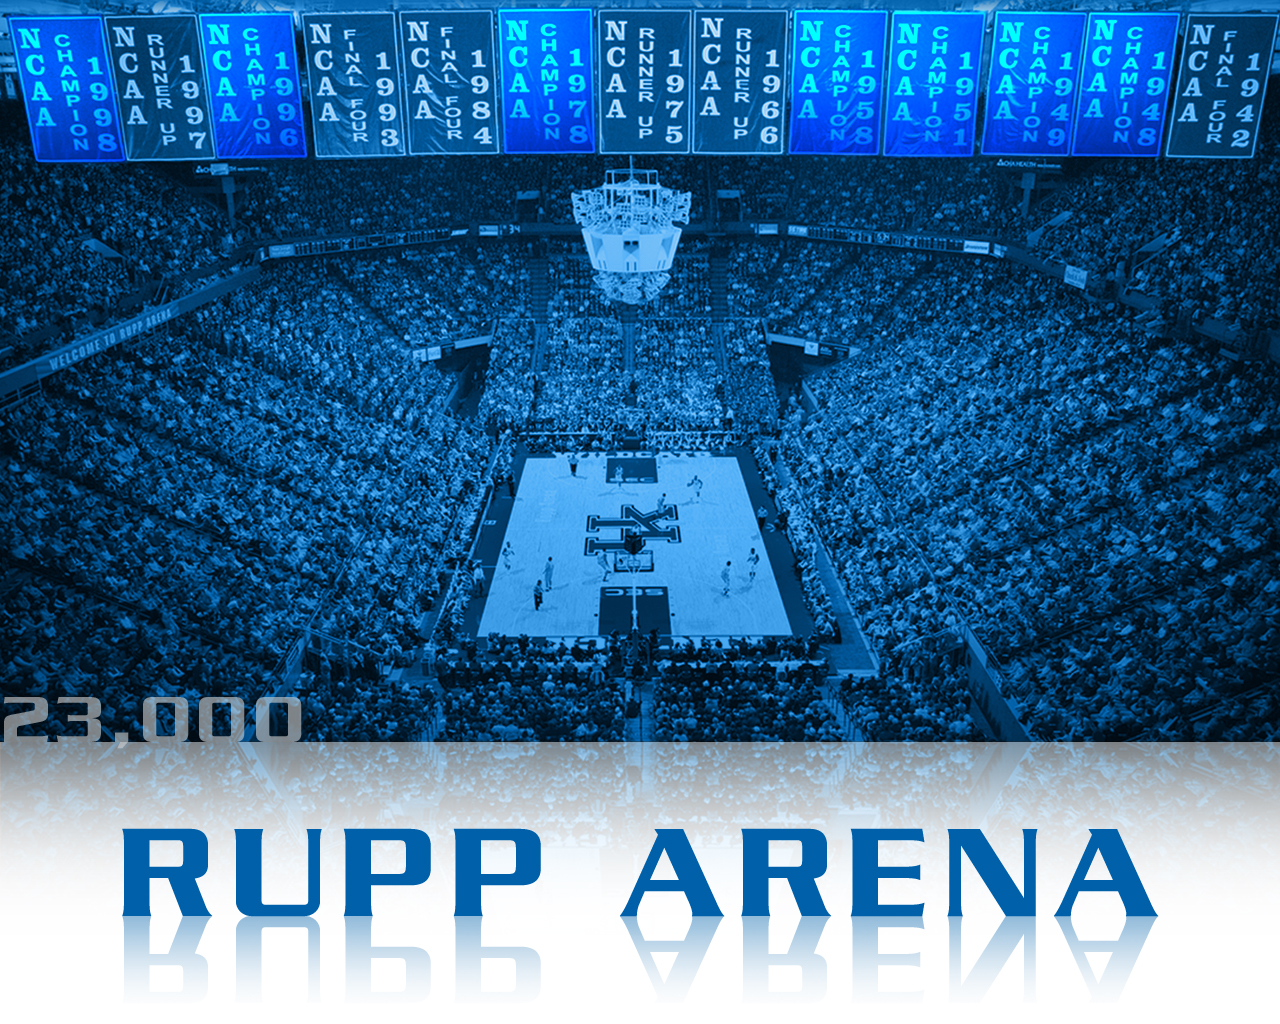 wallpapers for android basketball wallpapers for computer for 1280x1024